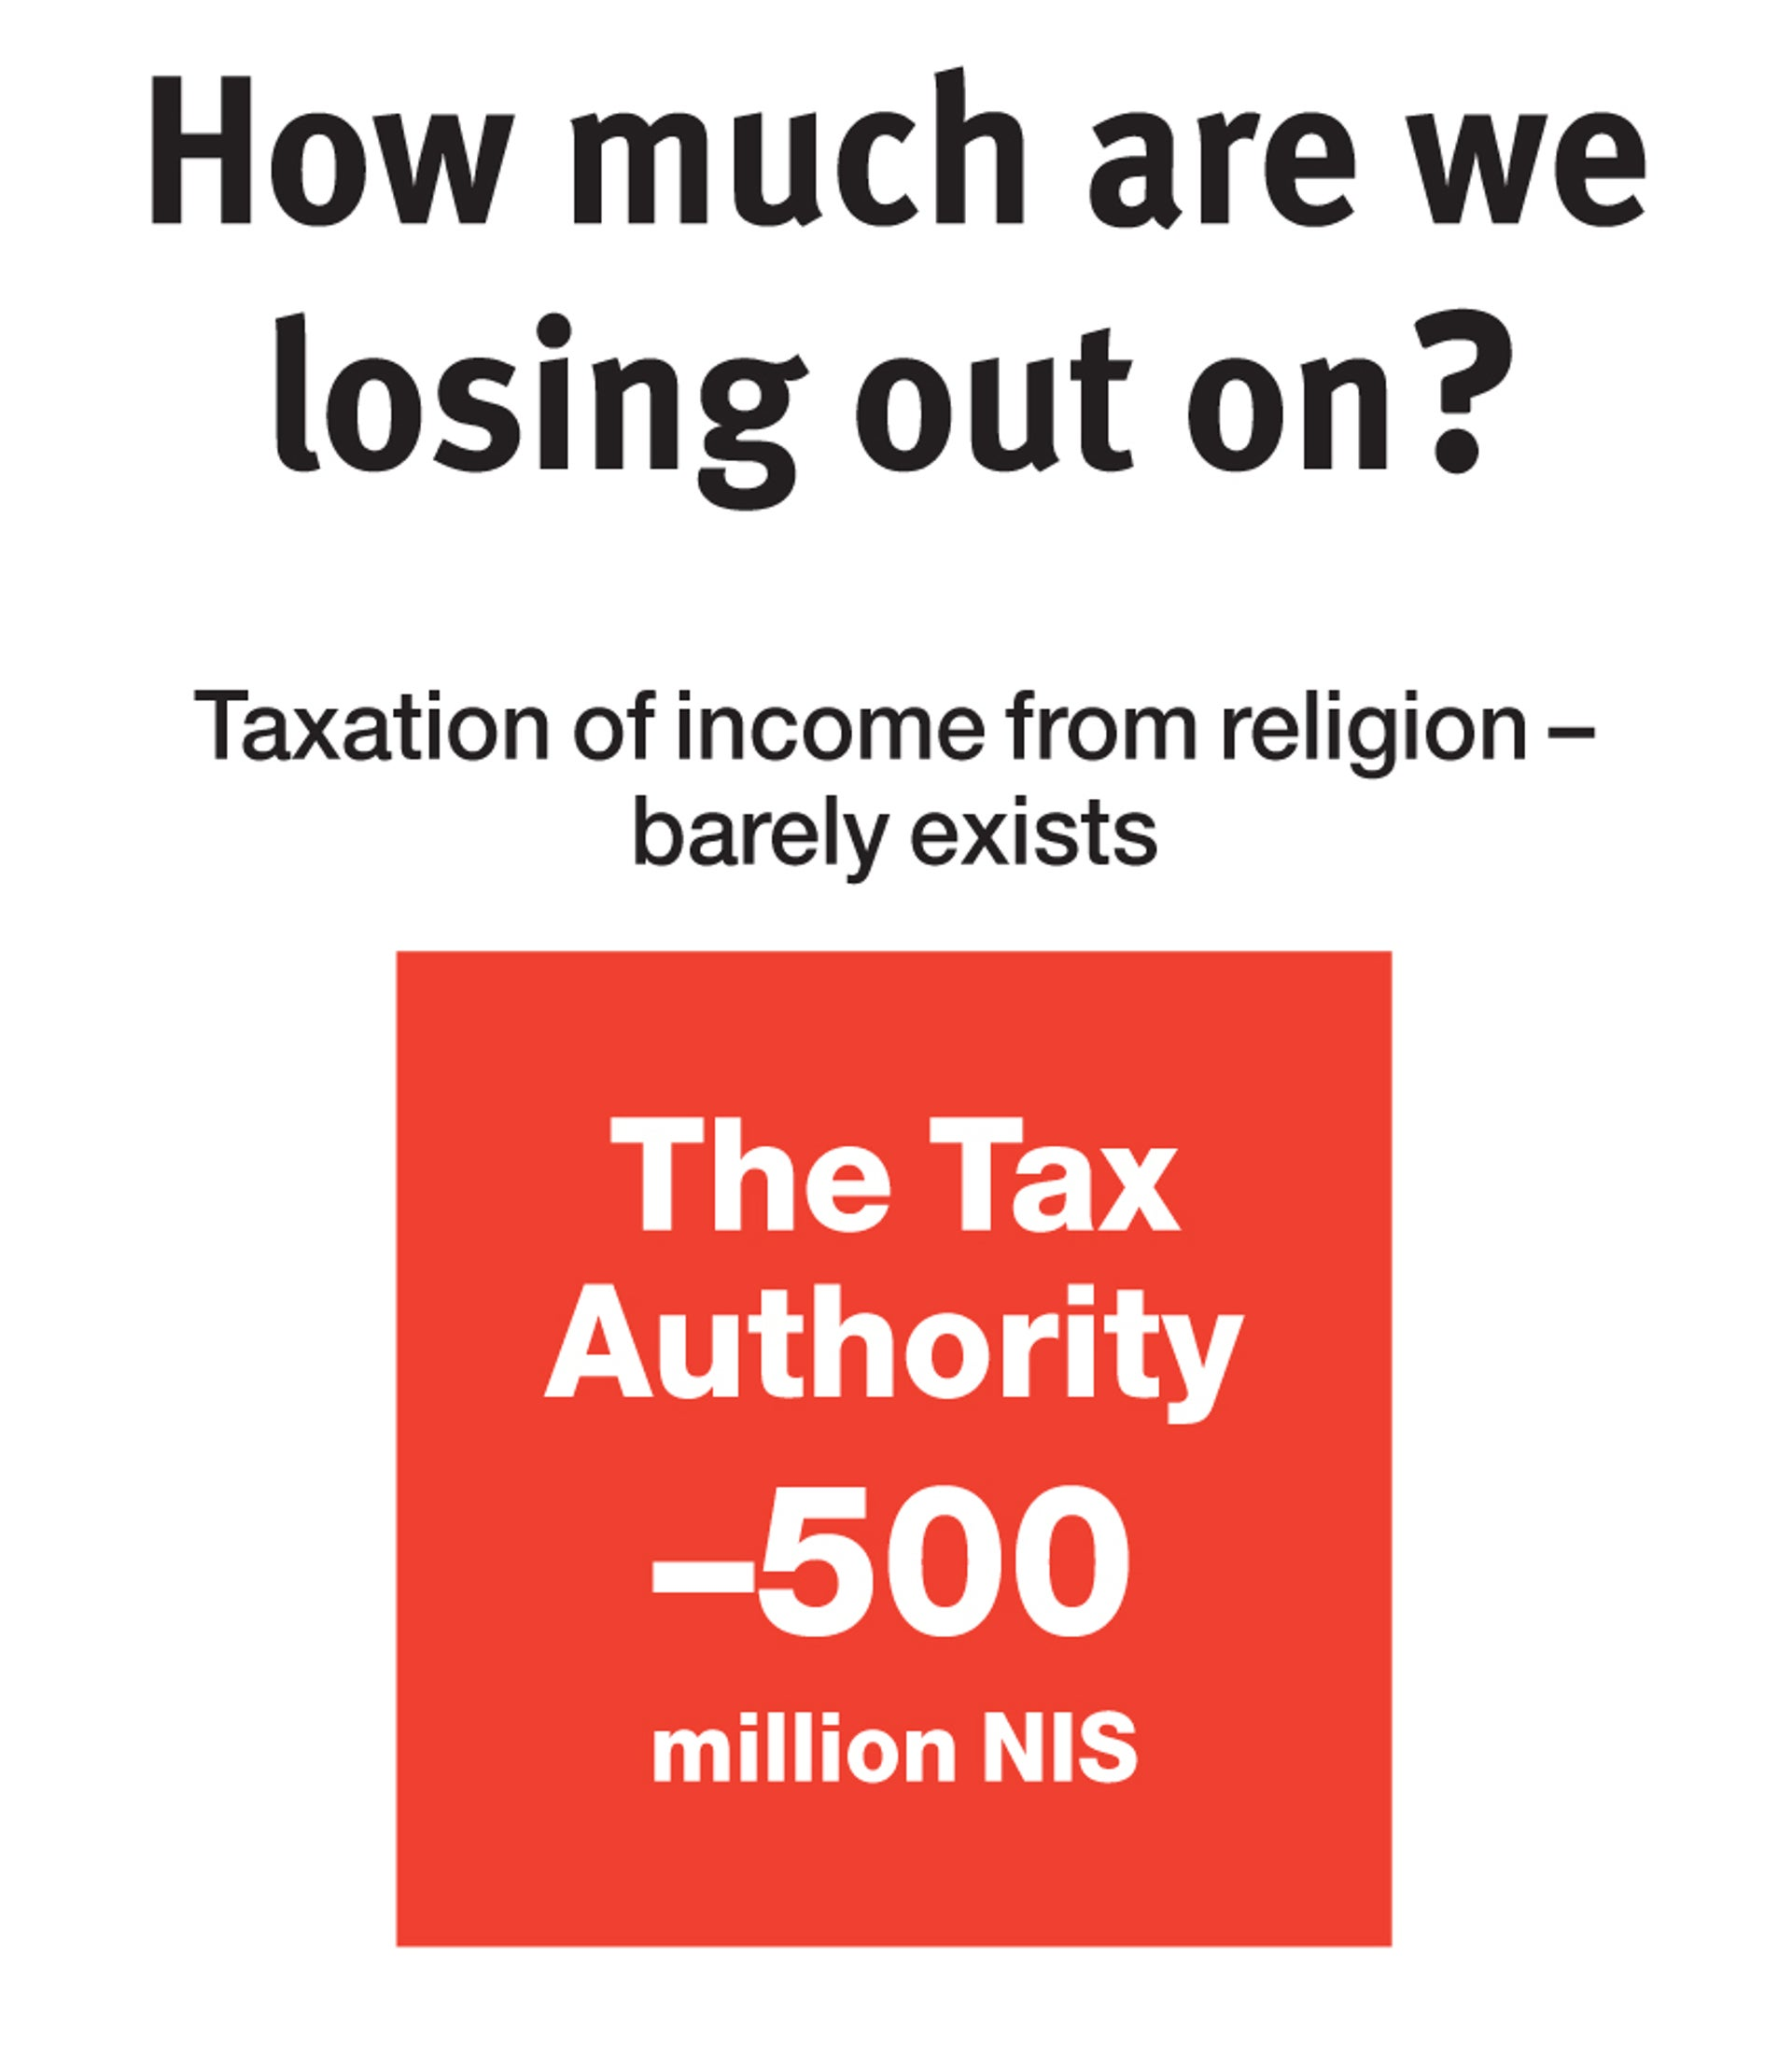 The tax authority loses 500 million shekels because taxation of income from religion barely exists.